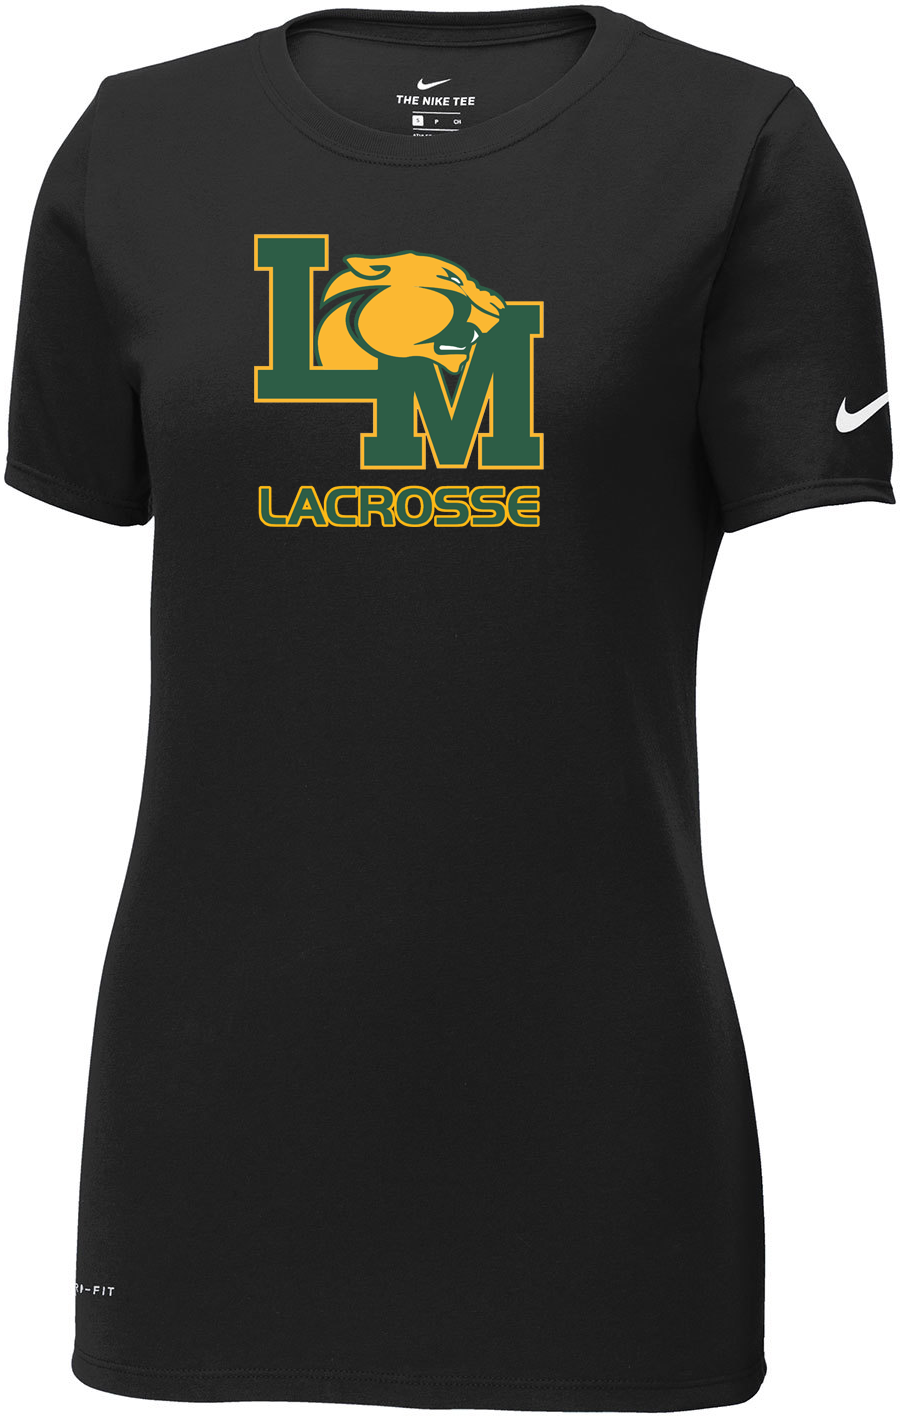 Little Miami Lacrosse Black Nike Ladies Dri-FIT Tee